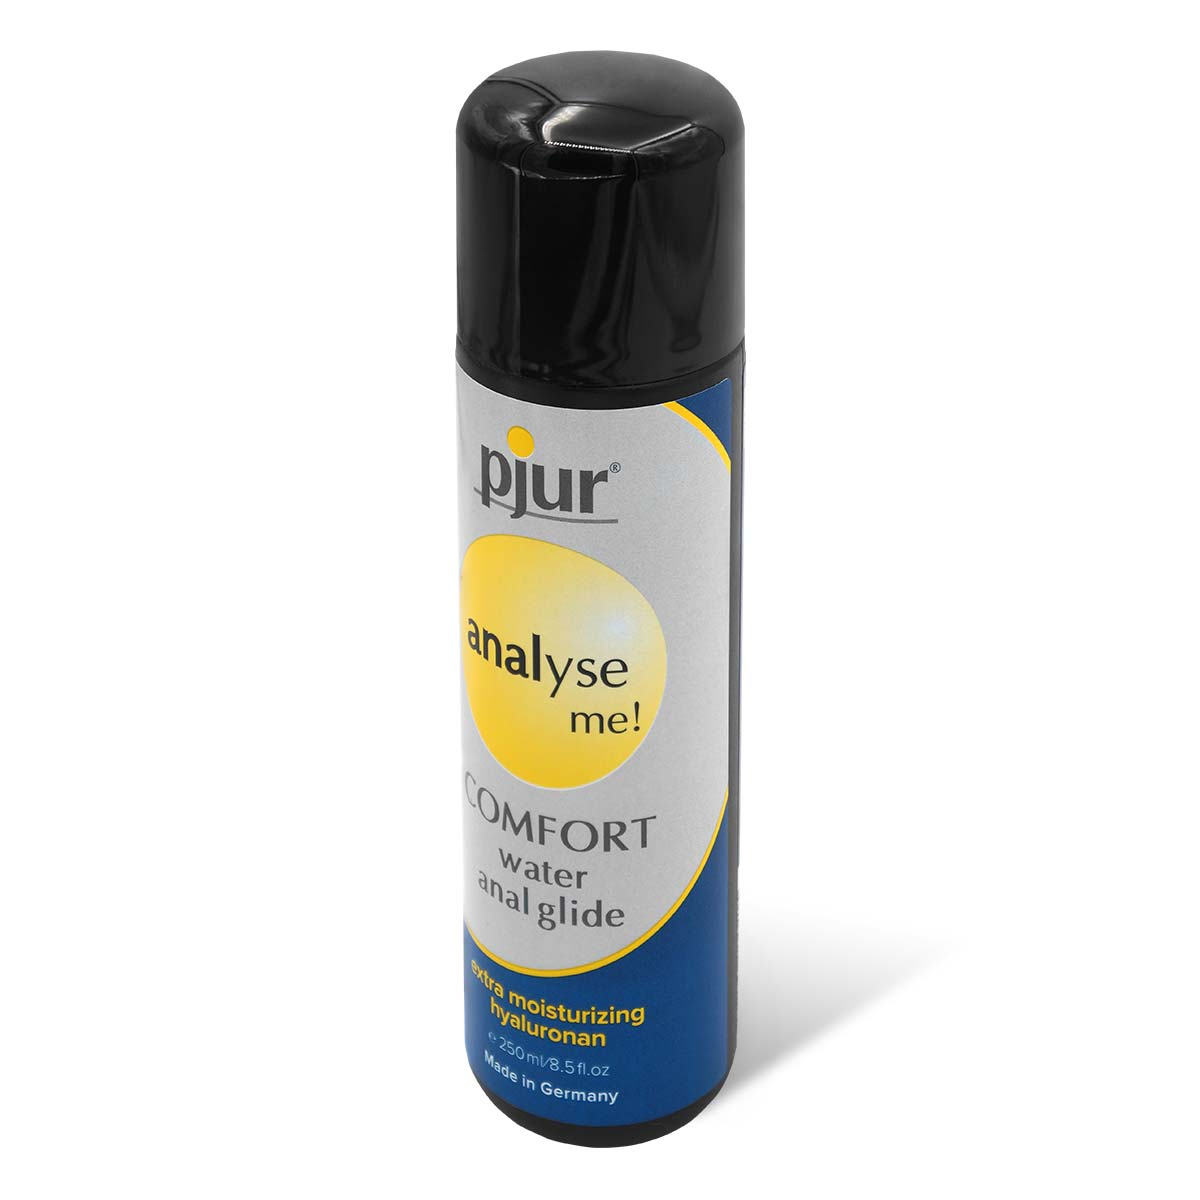 pjur analyse me! COMFORT Water Anal Glide 250ml Water-based Lubricant